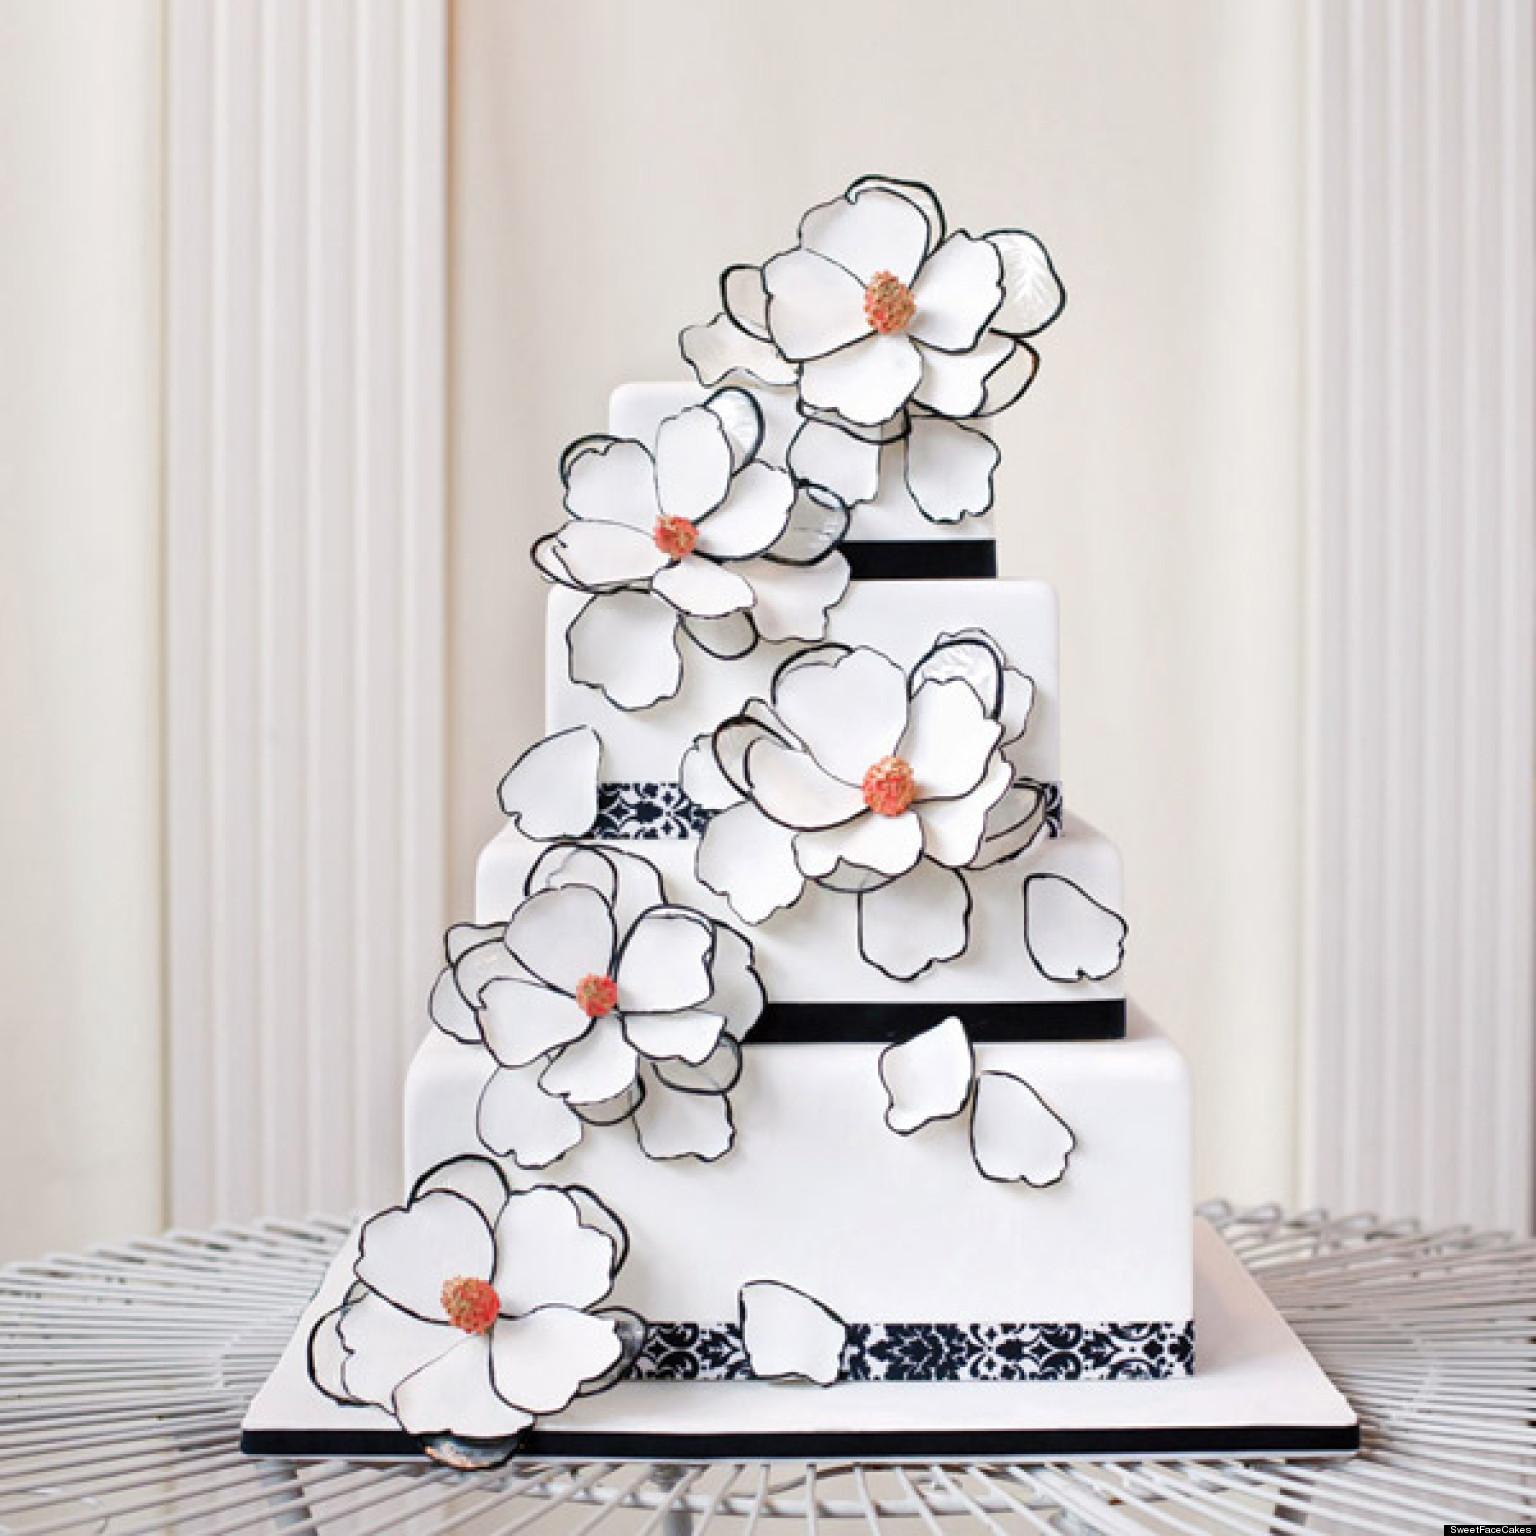 Wedding Cake Prices: 20 Ways To Save Big | HuffPost